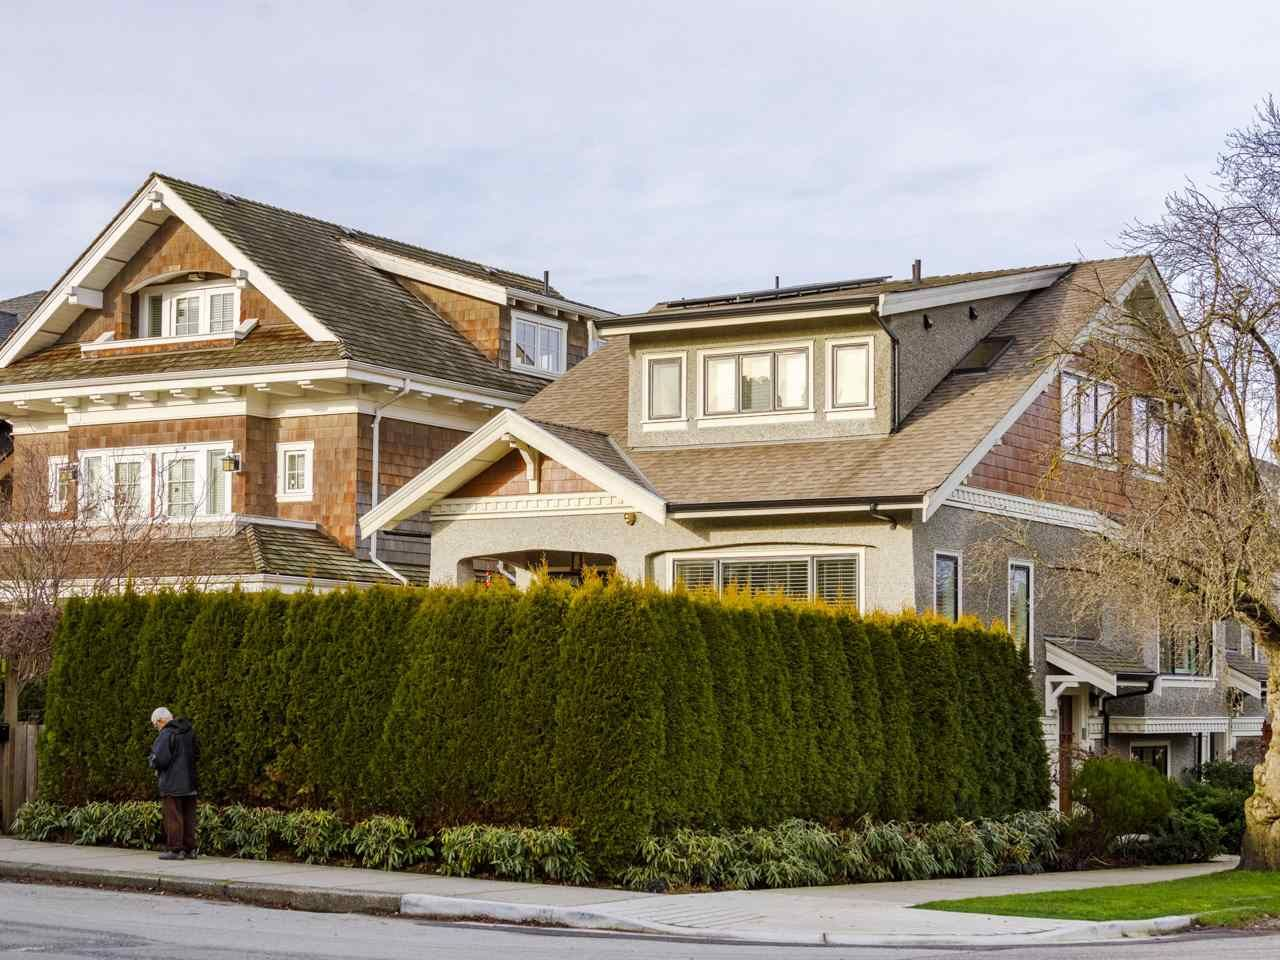 Main Photo: 3209 W 2ND AVENUE in Vancouver: Kitsilano Townhouse for sale (Vancouver West)  : MLS®# R2527751